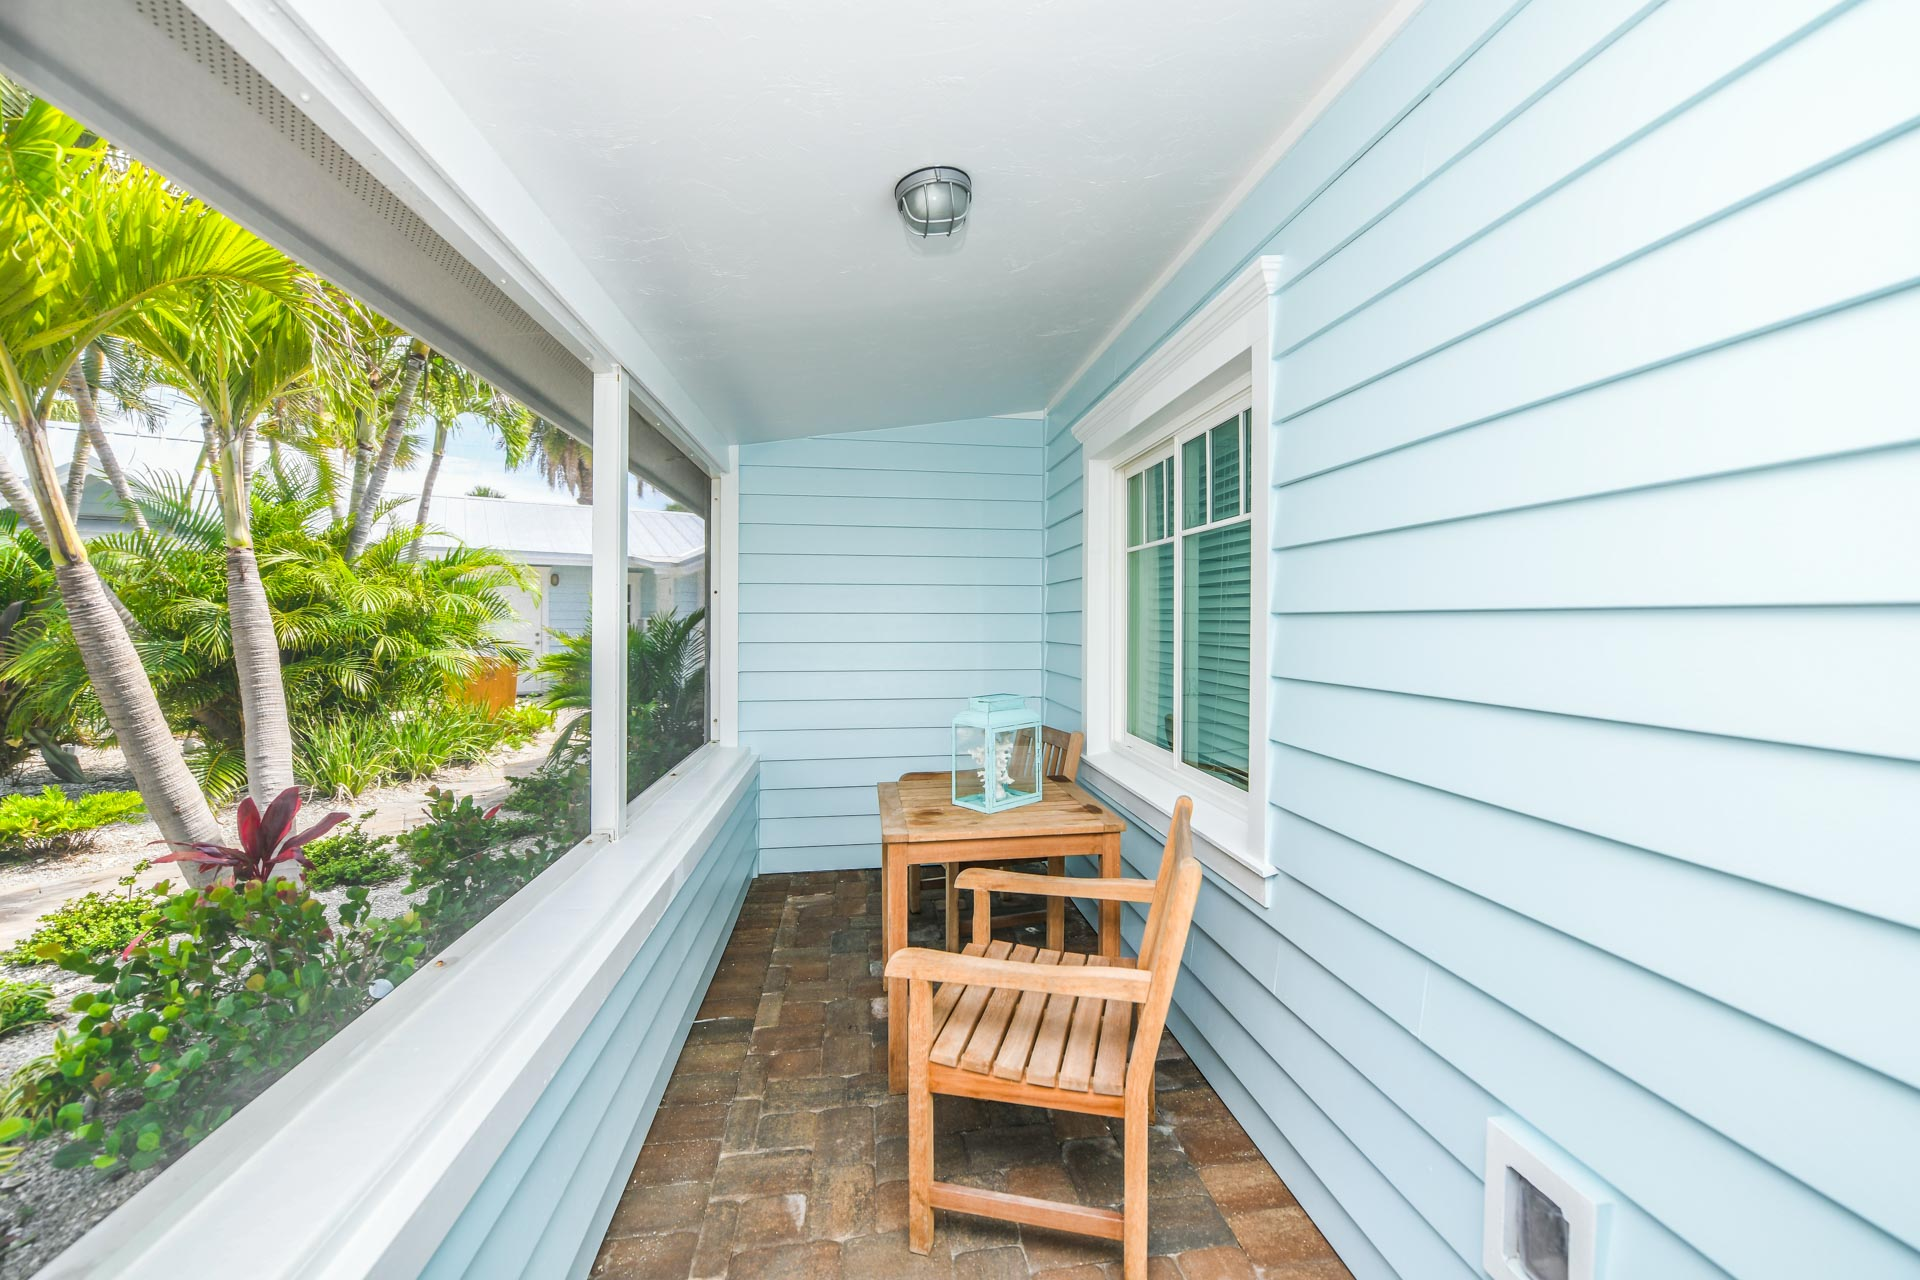 Private Screened Porch for this Beautiful Beach Bungalow